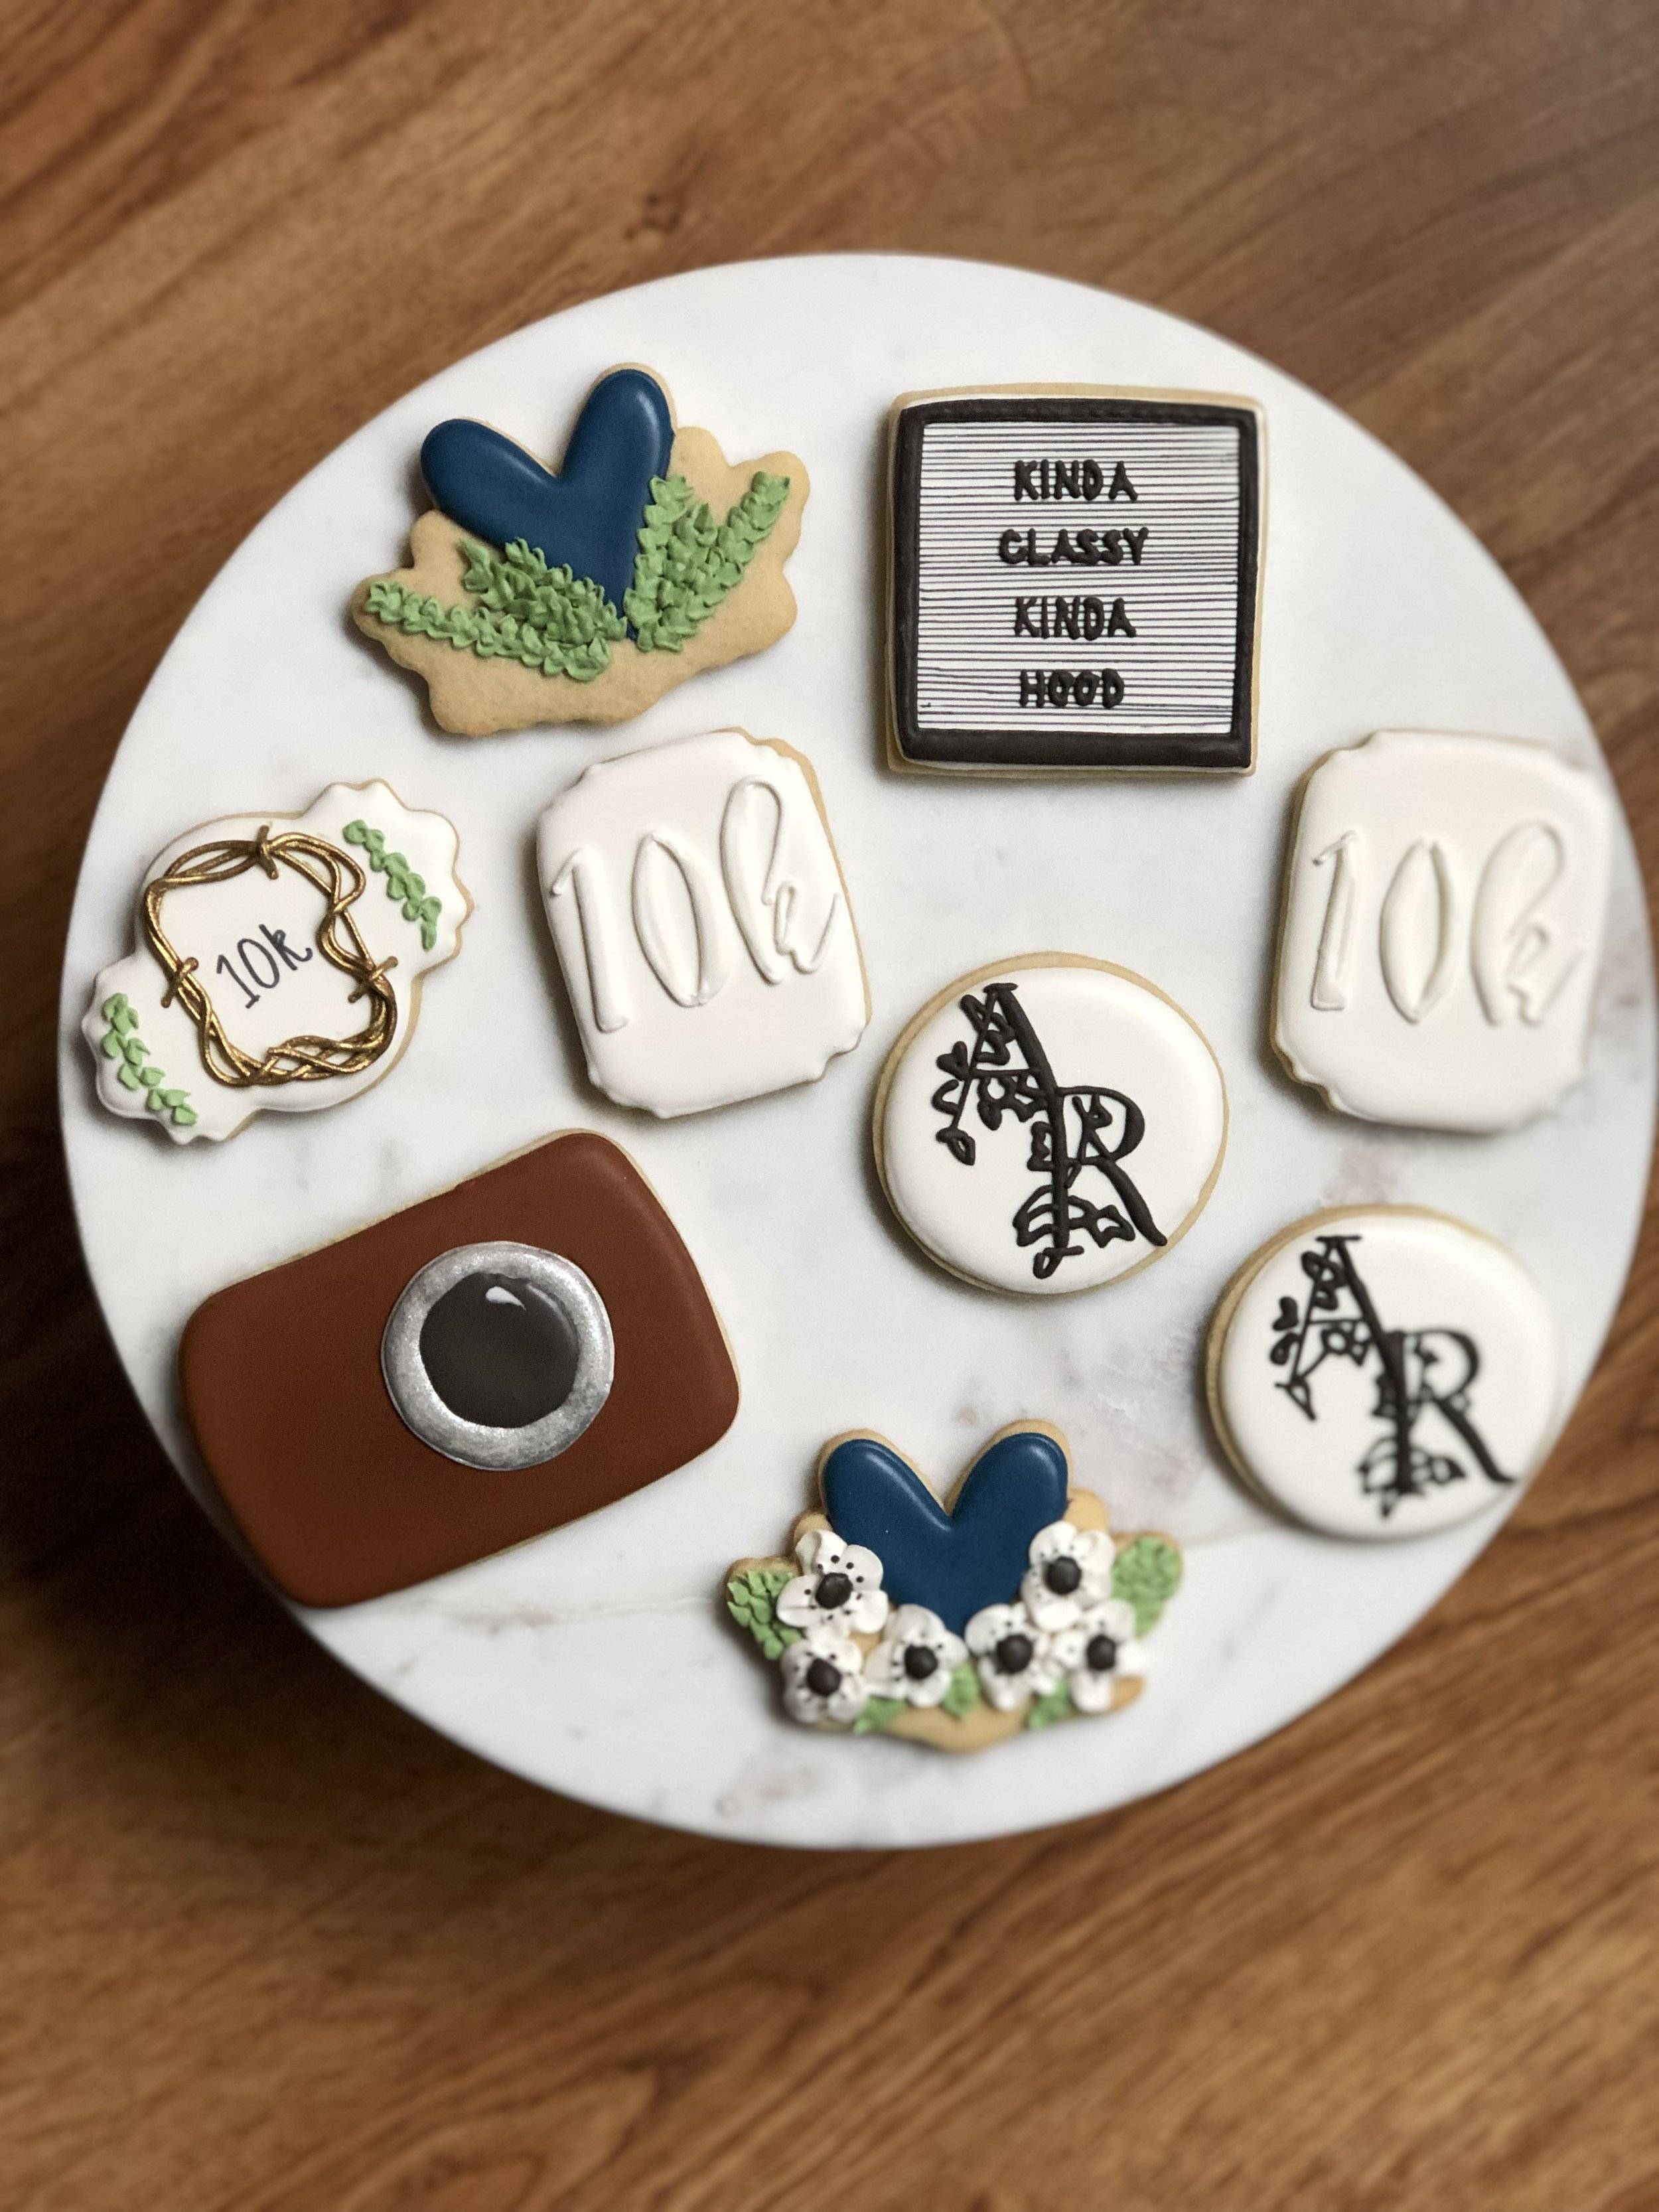 Baker Babe Cookie Co, Boss Babe Cookie Package, Boss Babe, Logo Design Cookies, Metro Detroit Baker, Decorated Sugar Cookies, Detroit Sugar Cookies, Metro Detroit Sugar Cookies, Kinda Classy, Kinda Hood.